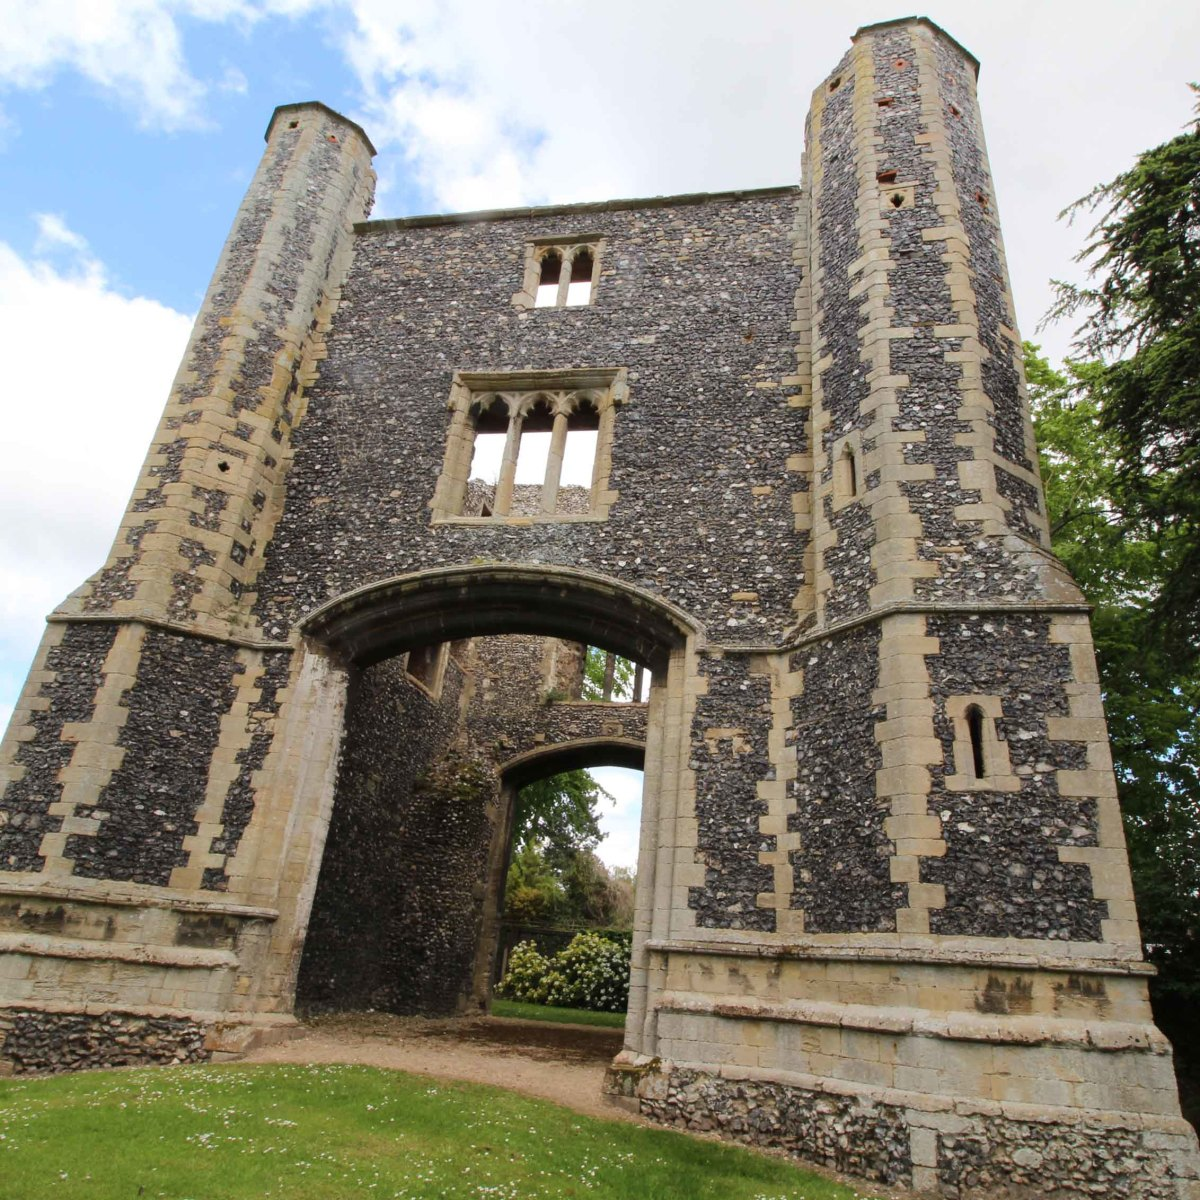 The 14th century gatehouse now stands in the grounds of a private house, but access is freely granted via an unlocked gate. Just respect the privacy of the home owner